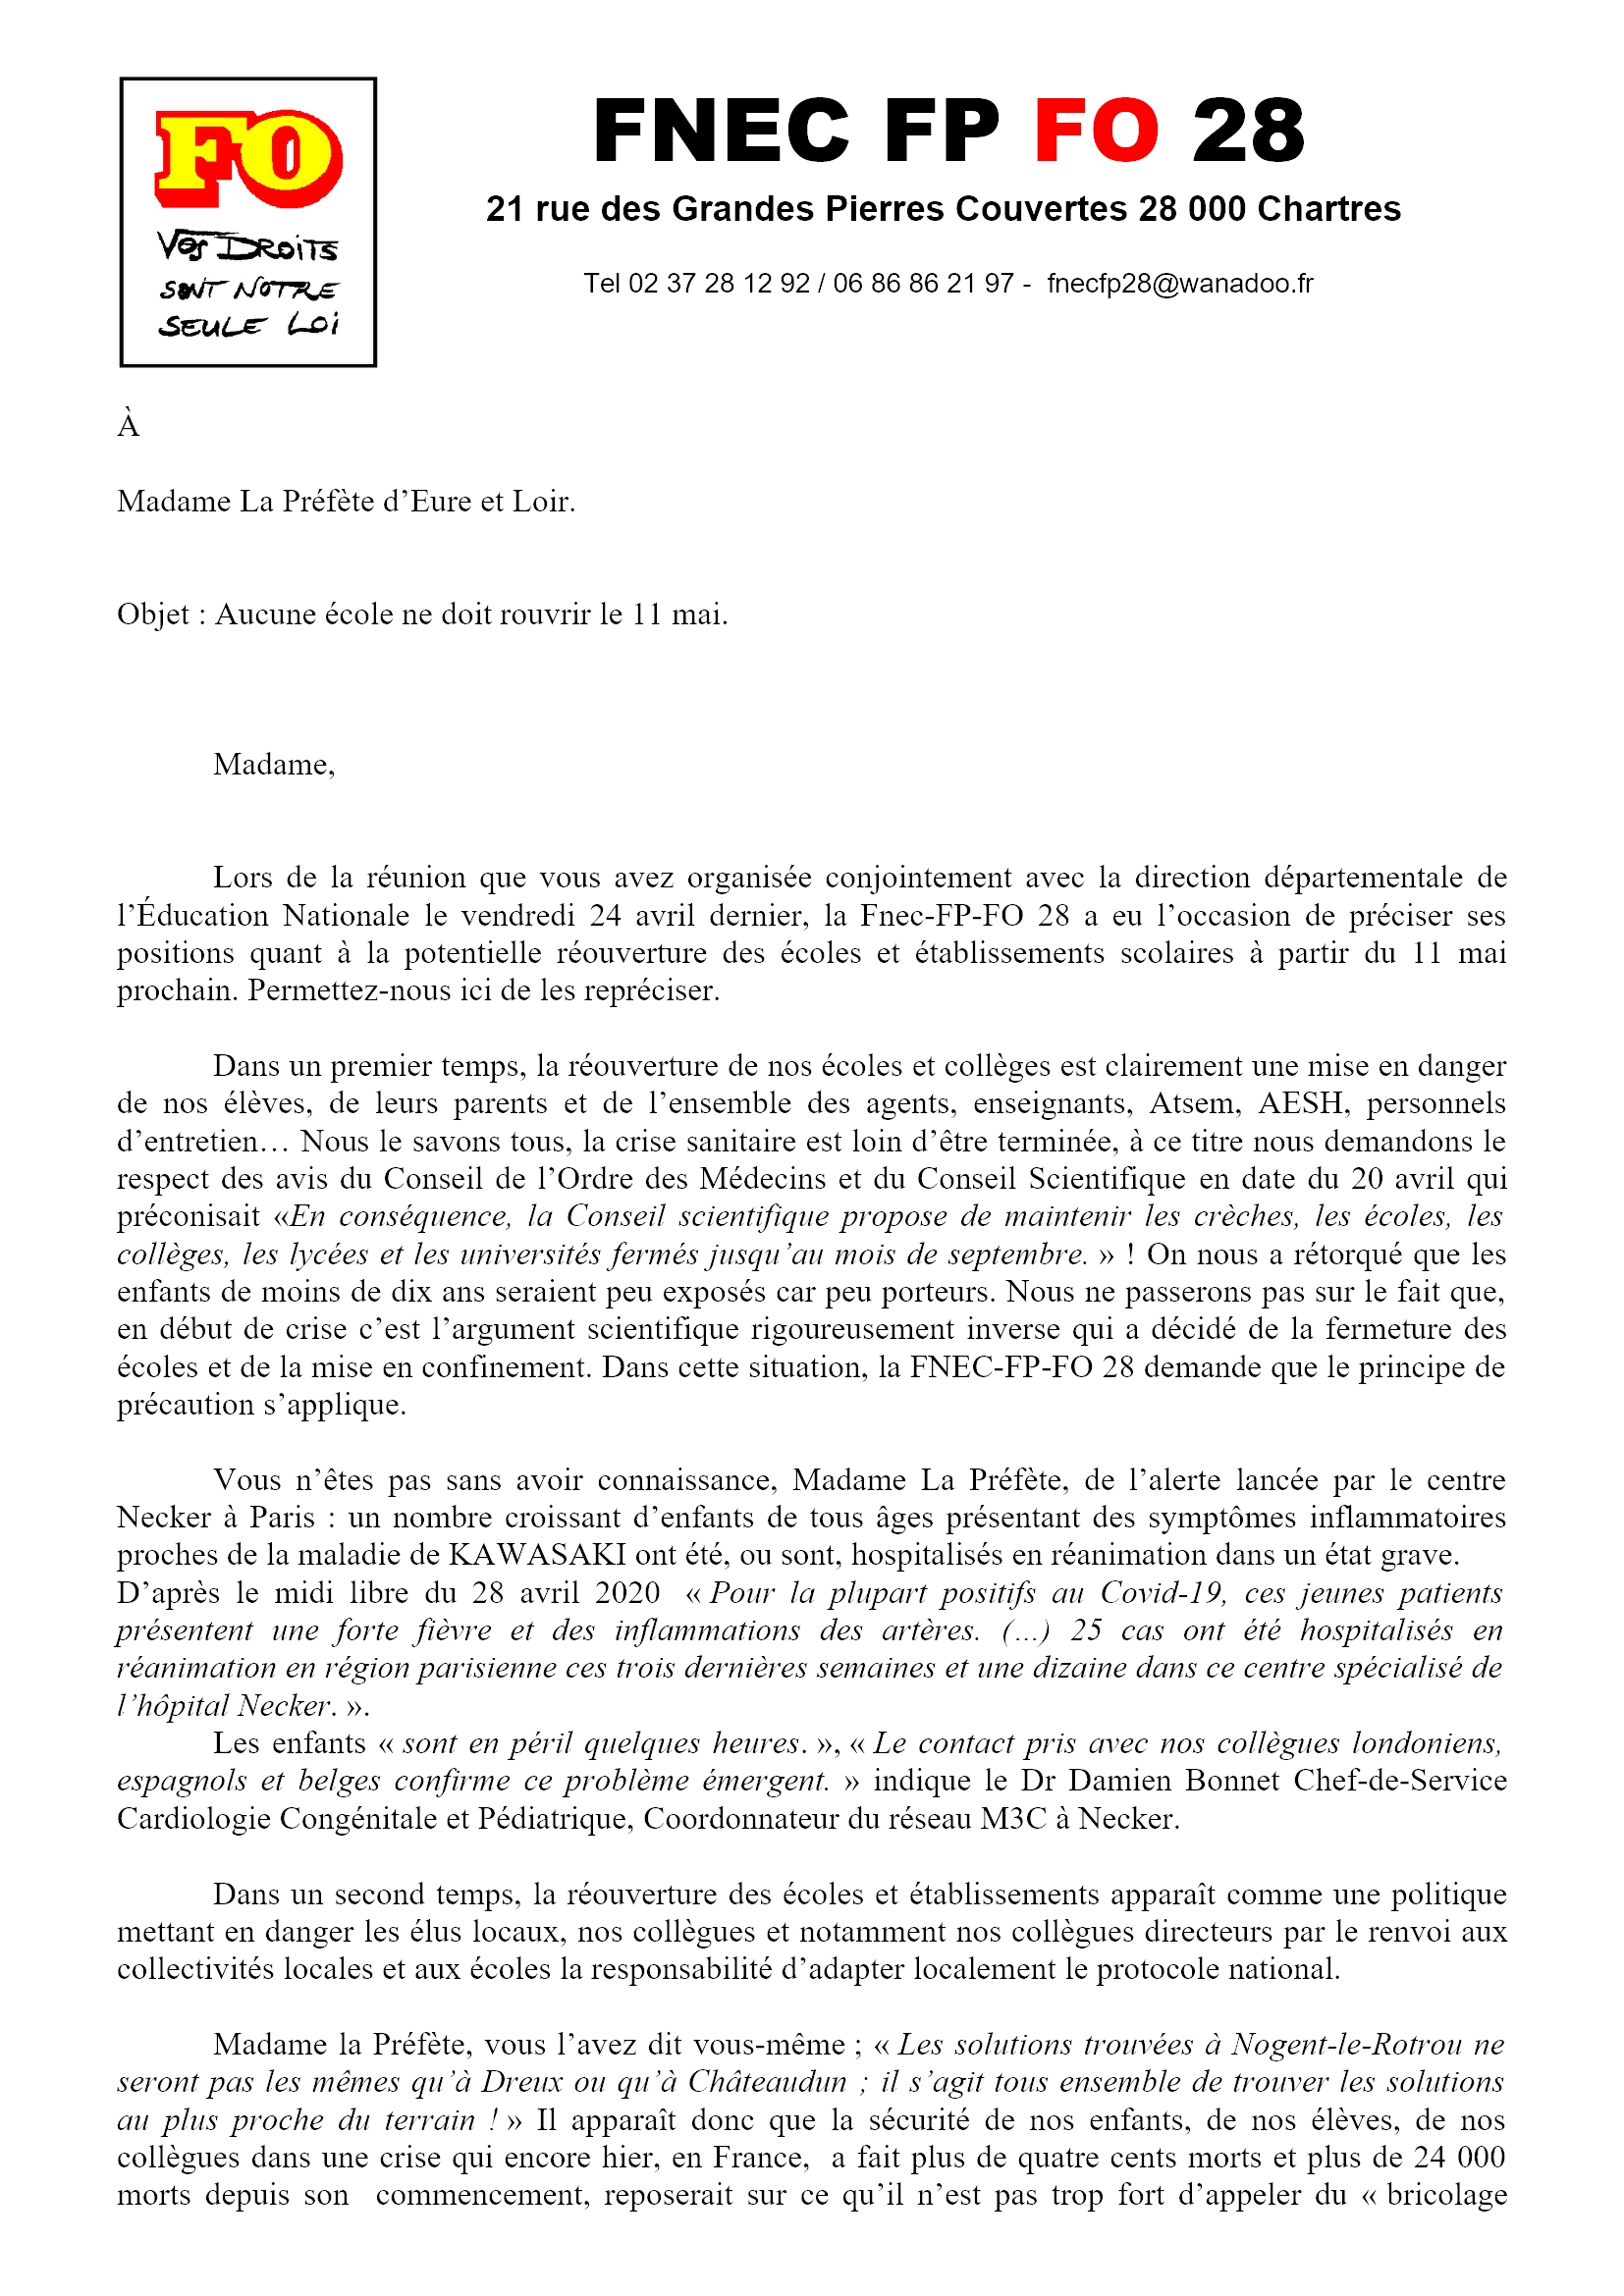 FNEC FP FO 28_courrier_prefecture 28-04-2020 1x2